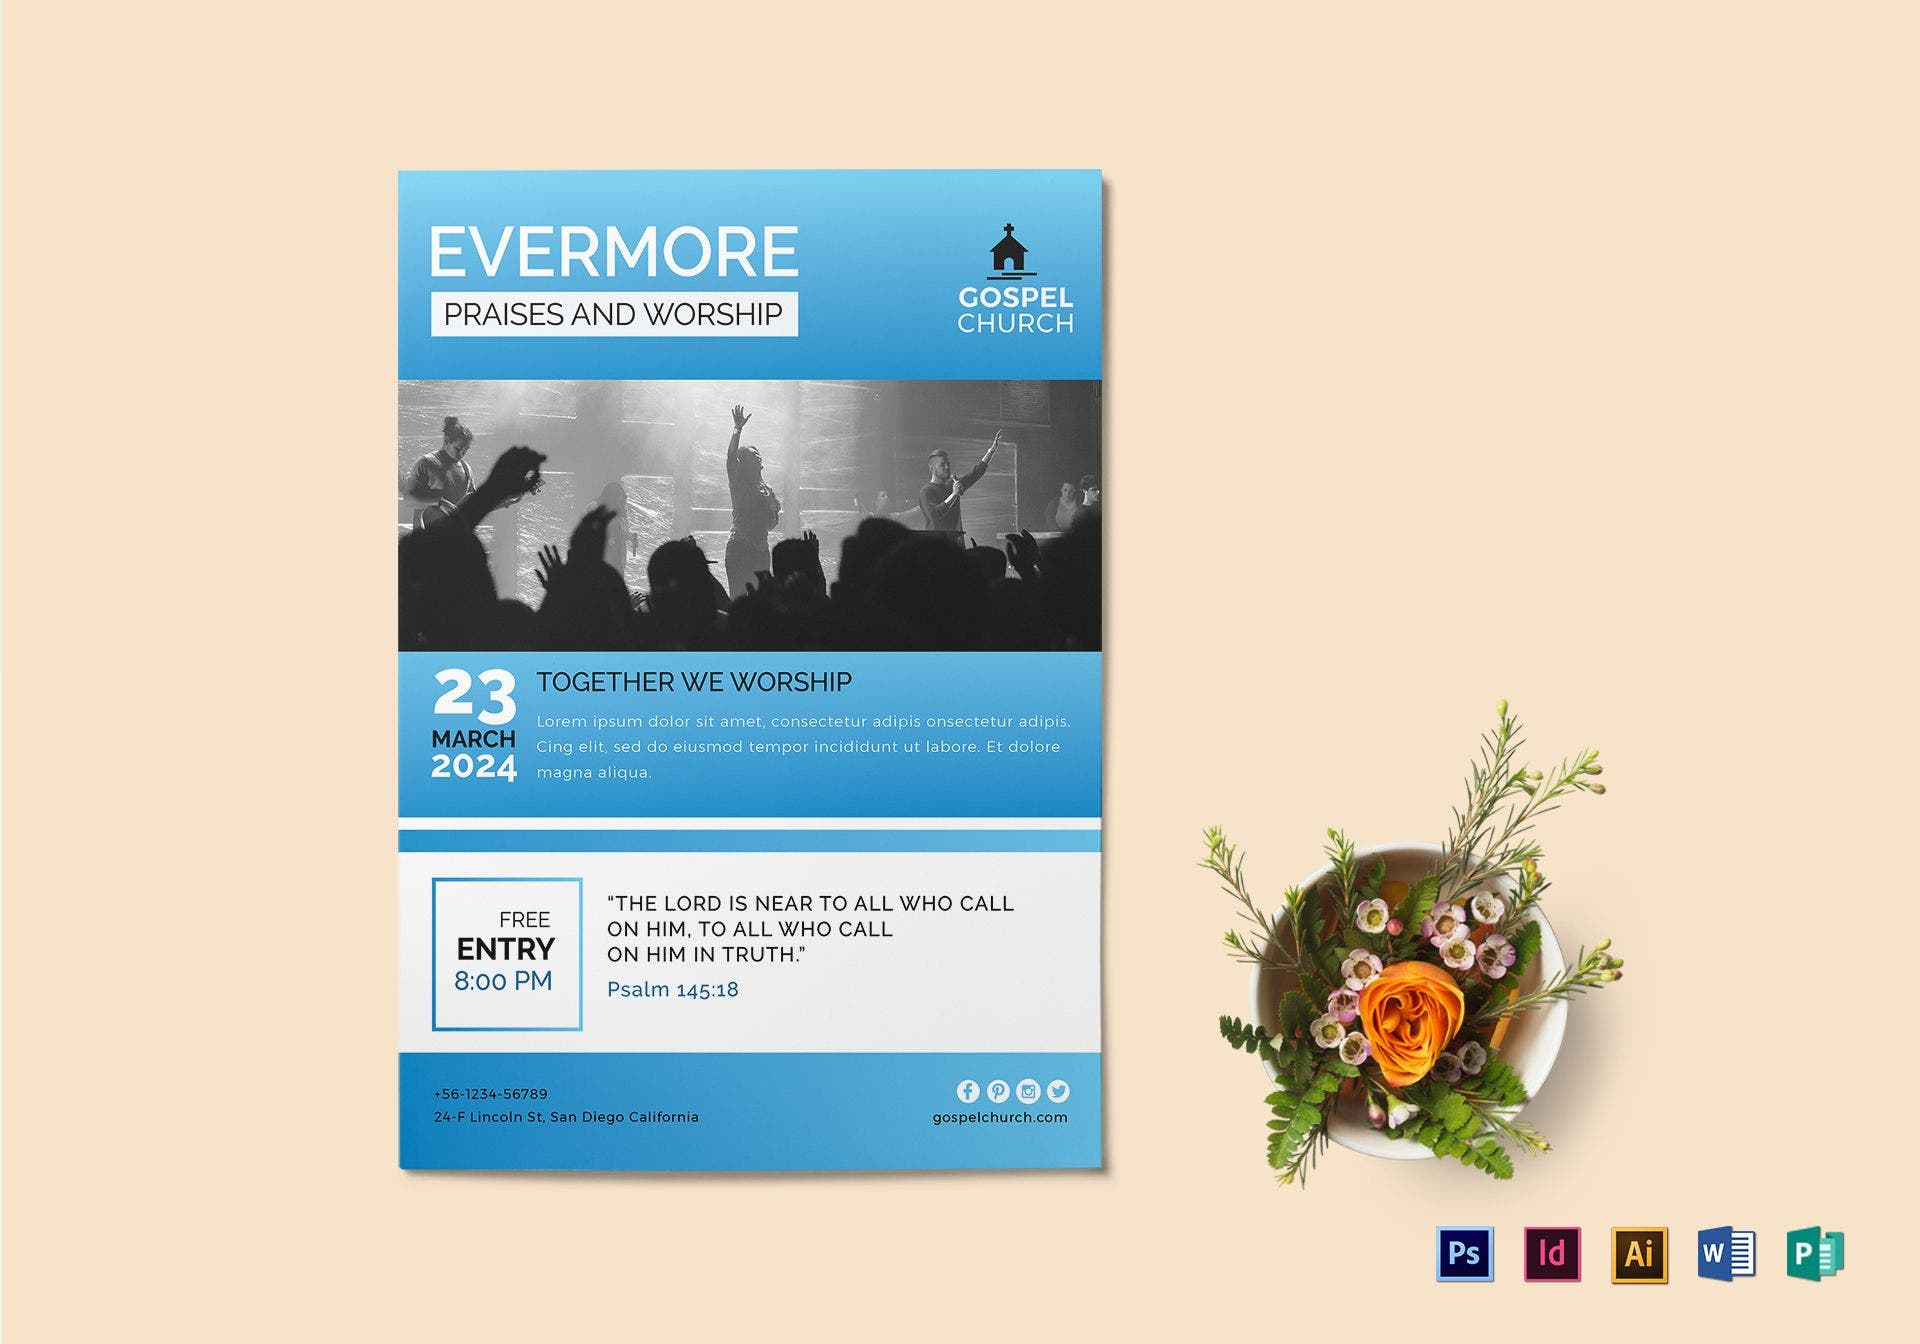 evermore praises church flyer layout